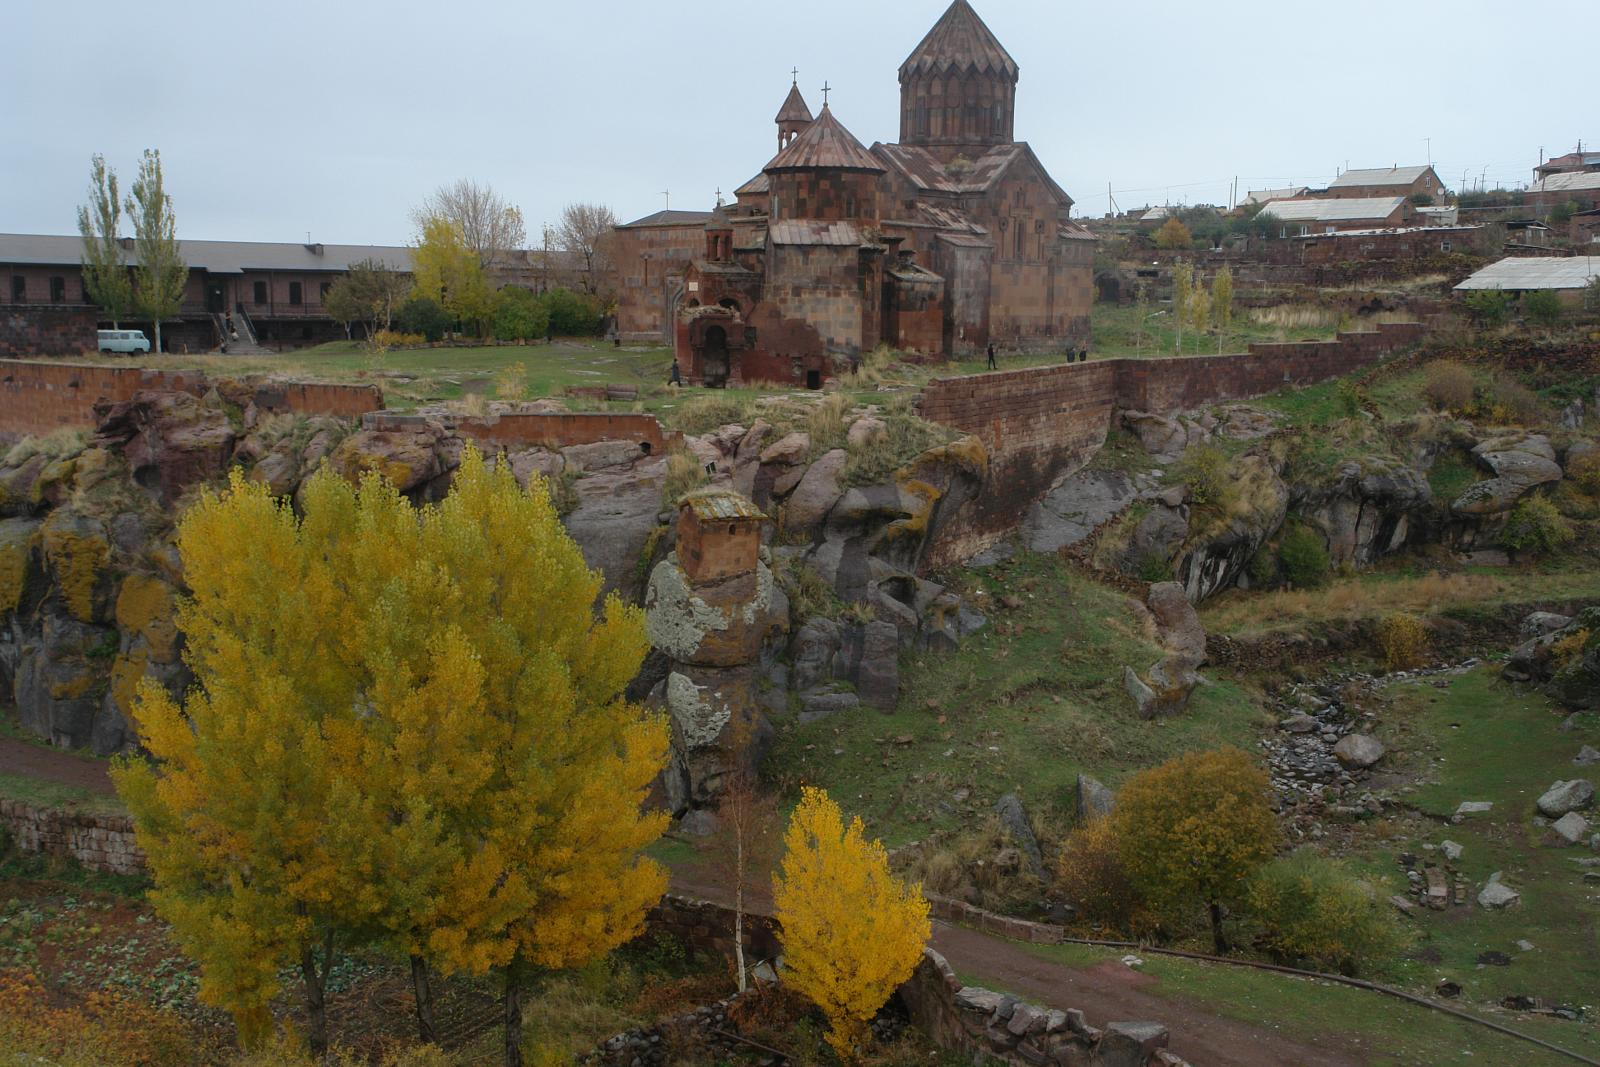 Фото Harichavank Monastery, Forests and the Medieval Monasteries of Pemzashen